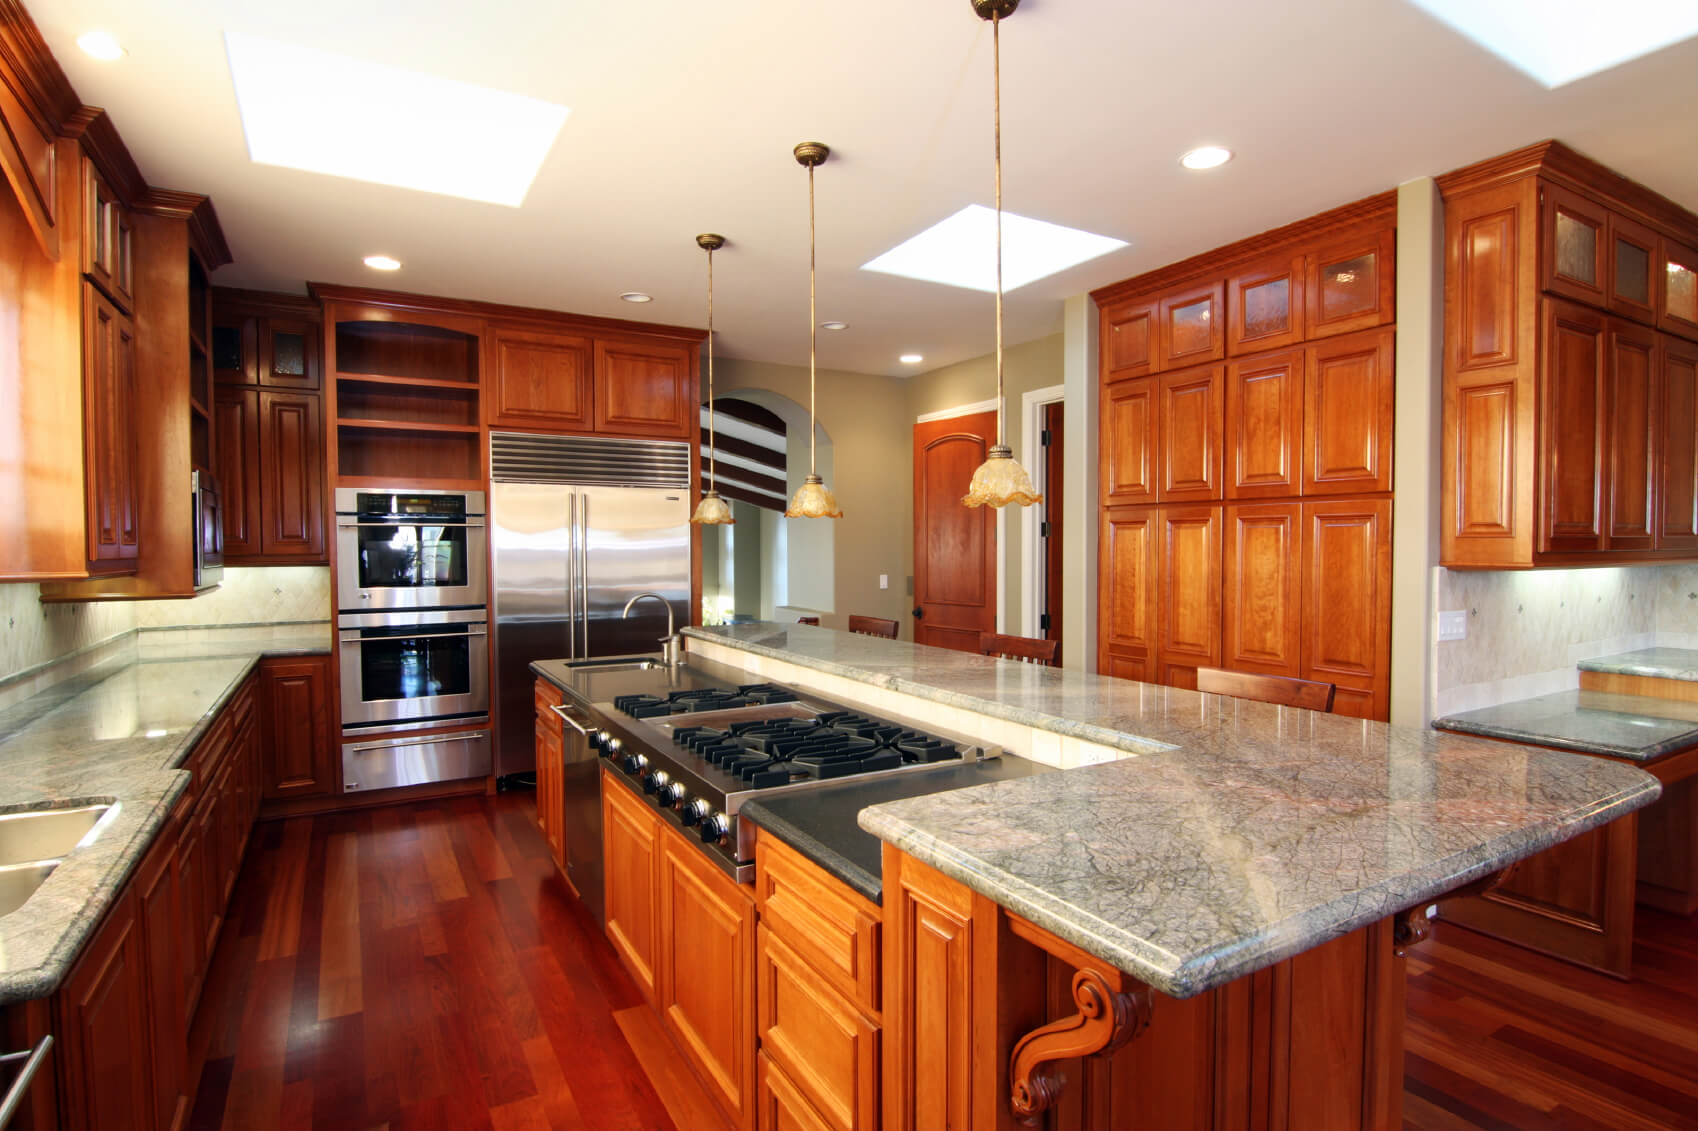 Kitchen Centered Around Lengthy Island Featuring Full Range Sink And Dishwasher Plus Raised